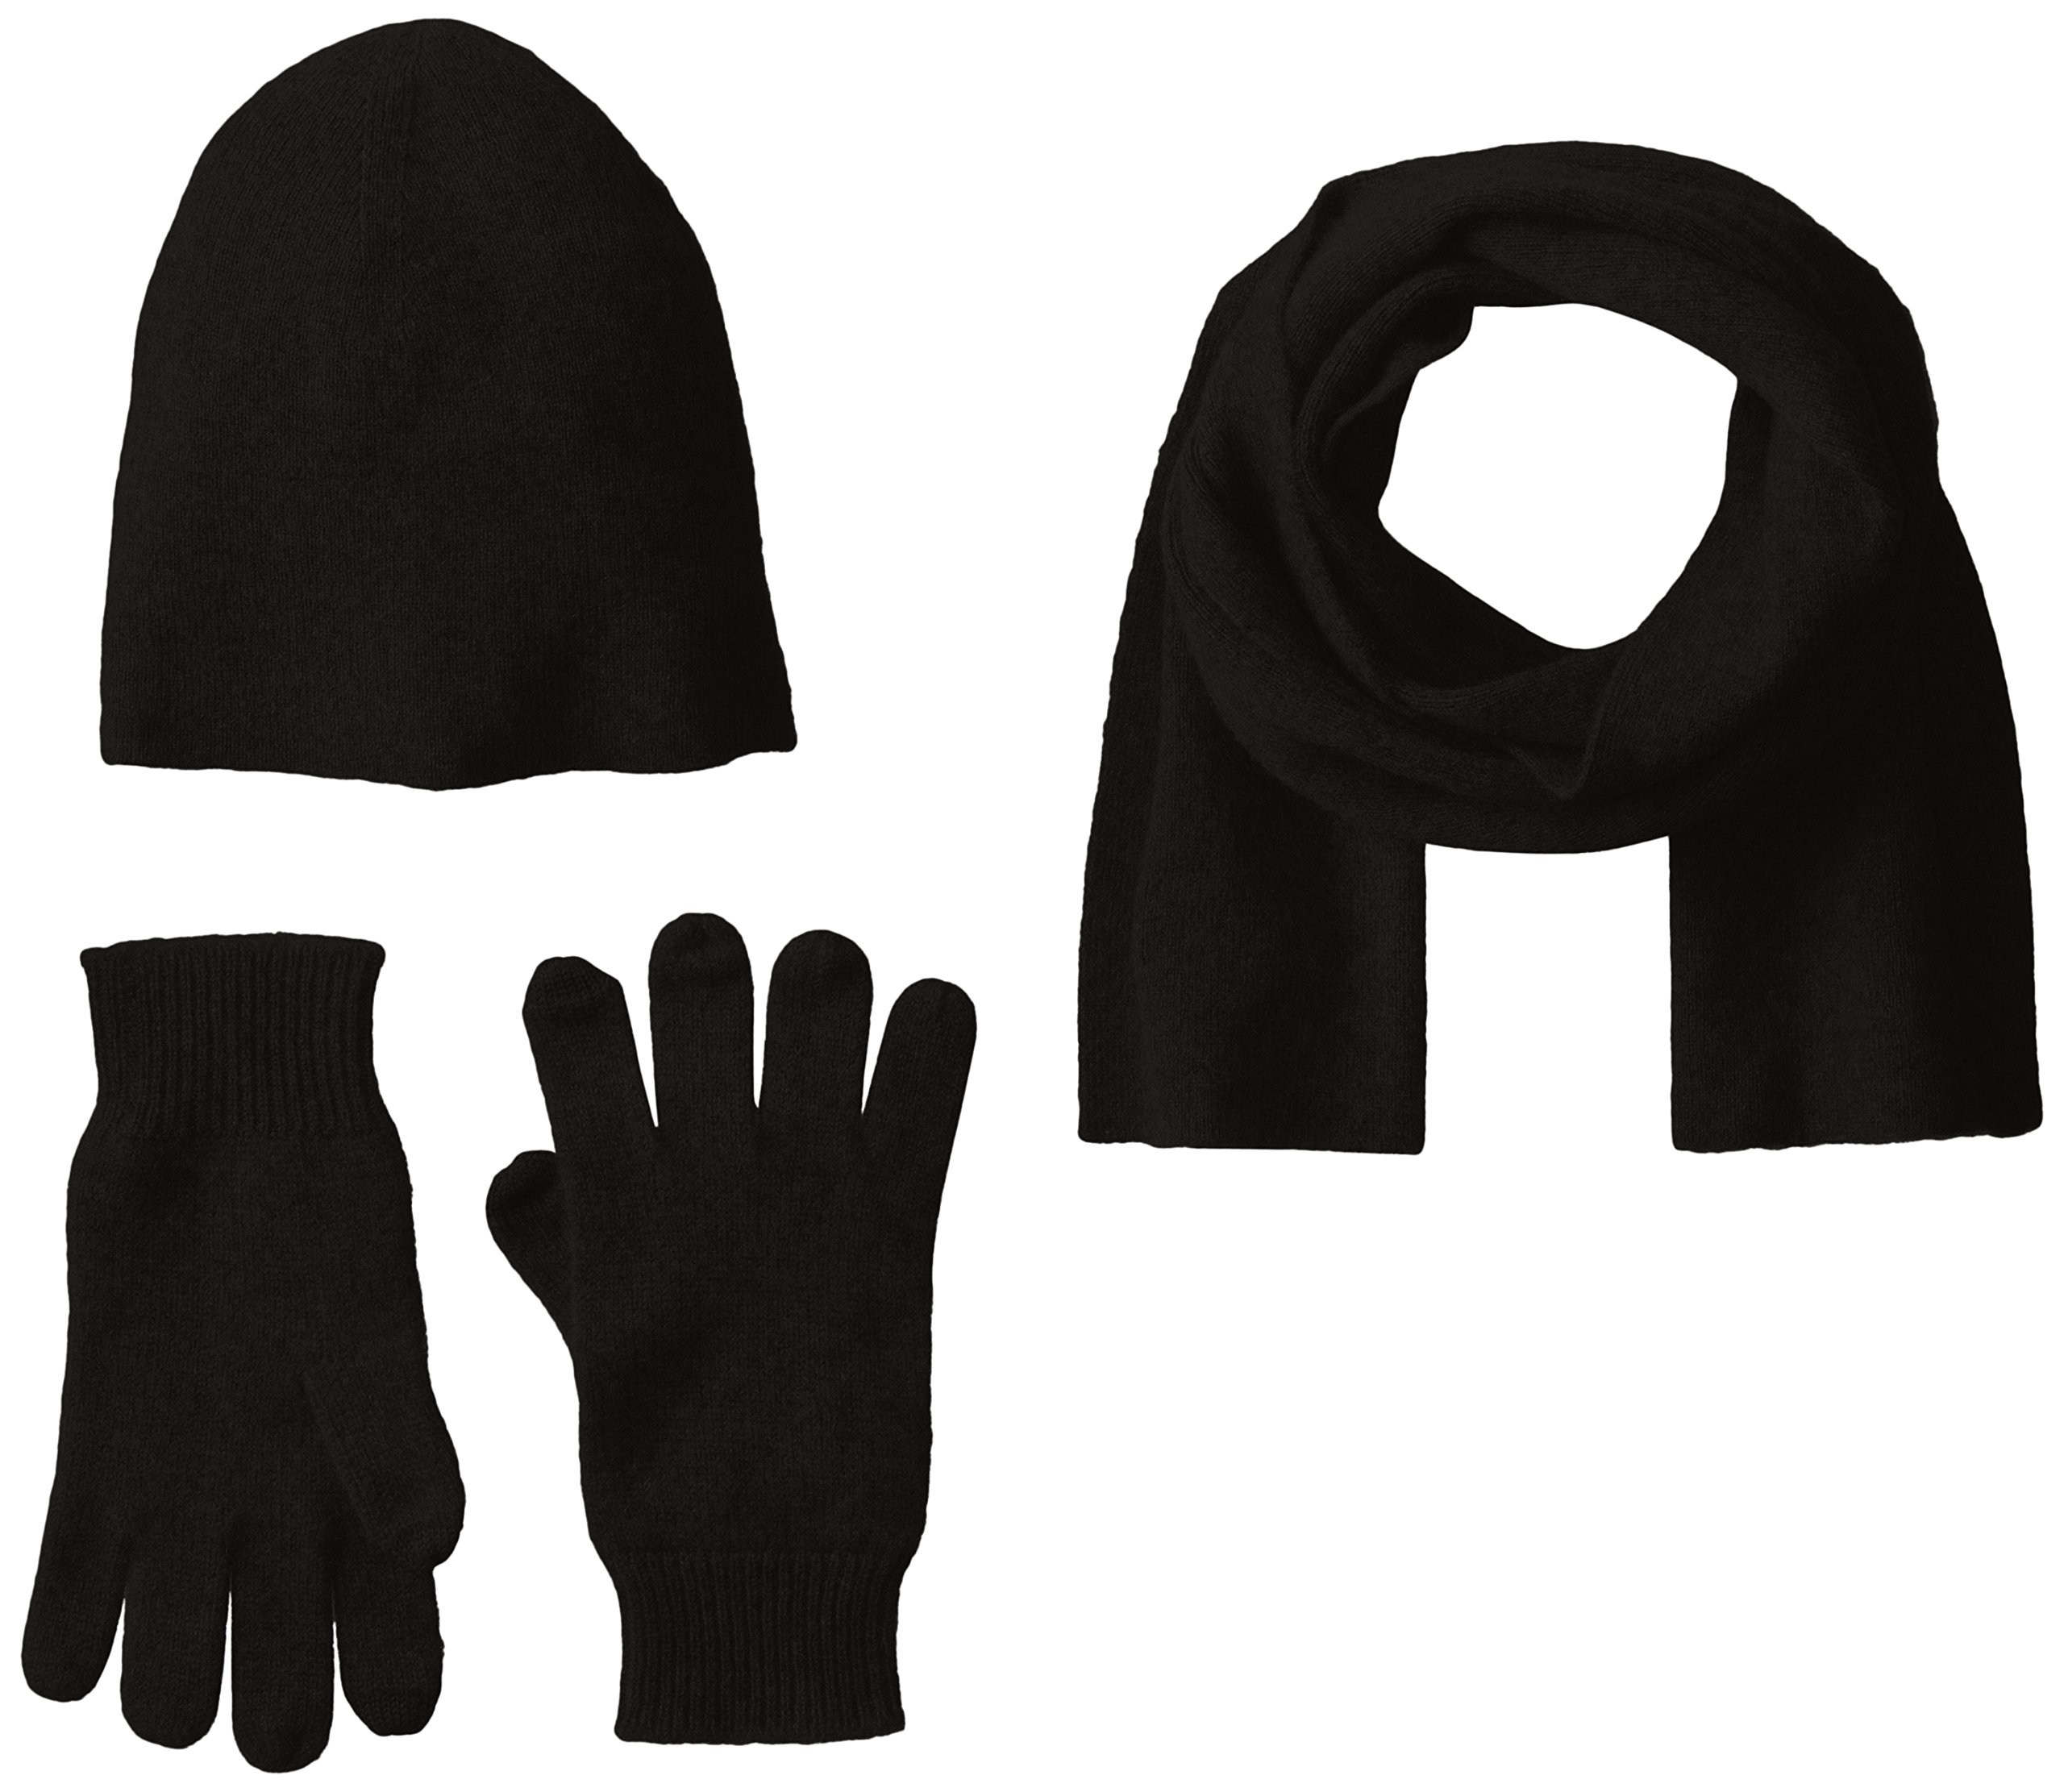 Williams Cashmere Men's Cashmere Hat, Texting Glove and Scarf Box Set, Black, One Size